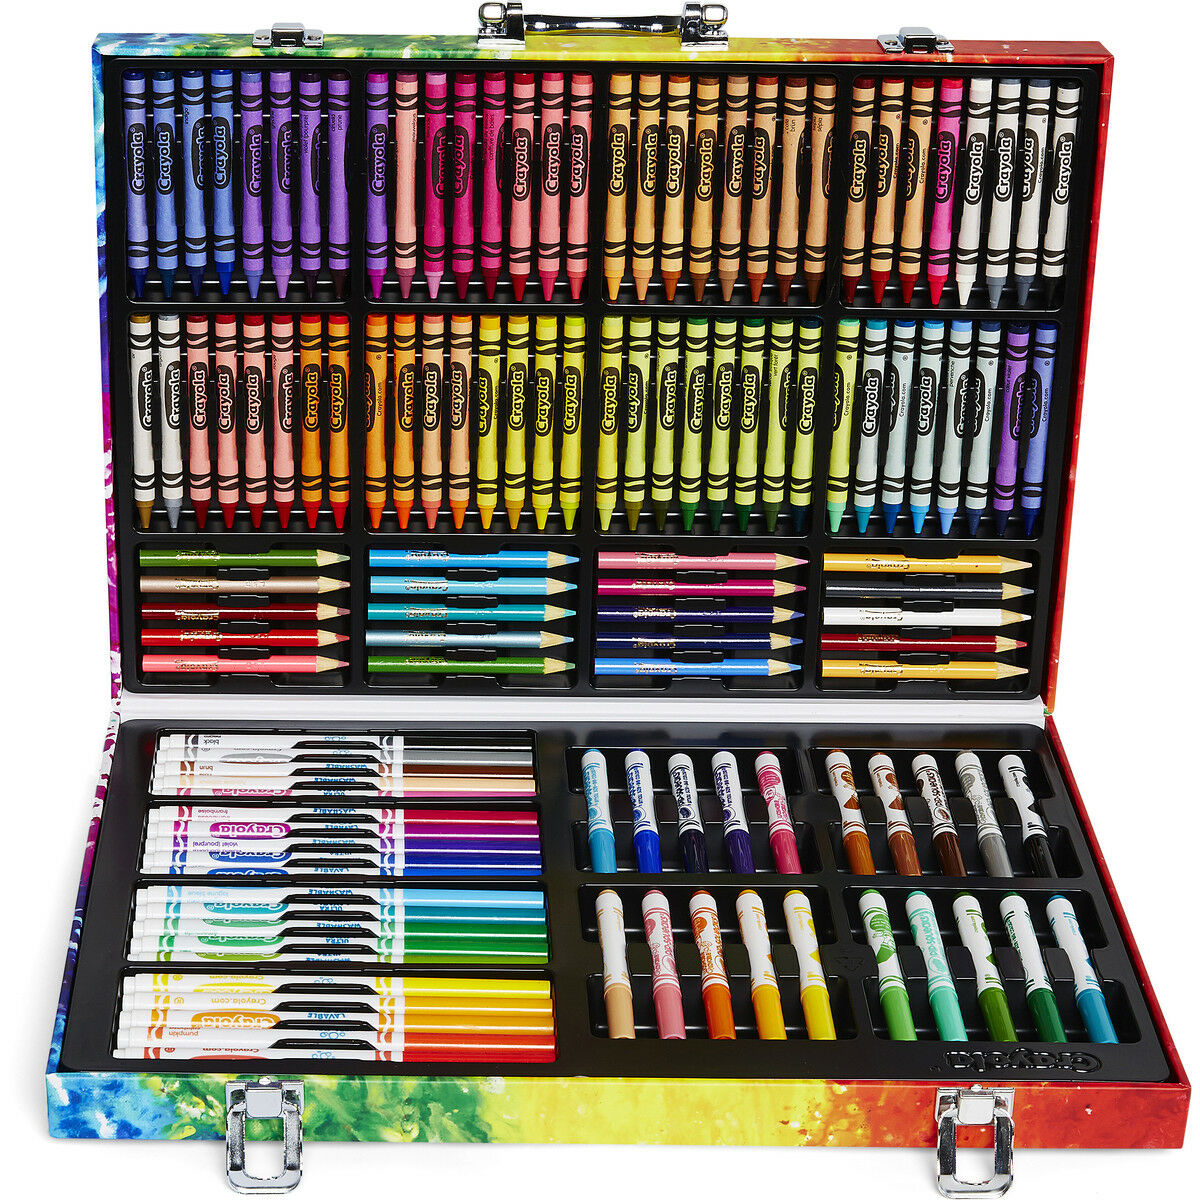 Details about Crayola Inspiration Art Case Drawing Coloring Tools Set  Nontoxic Birthday Gift